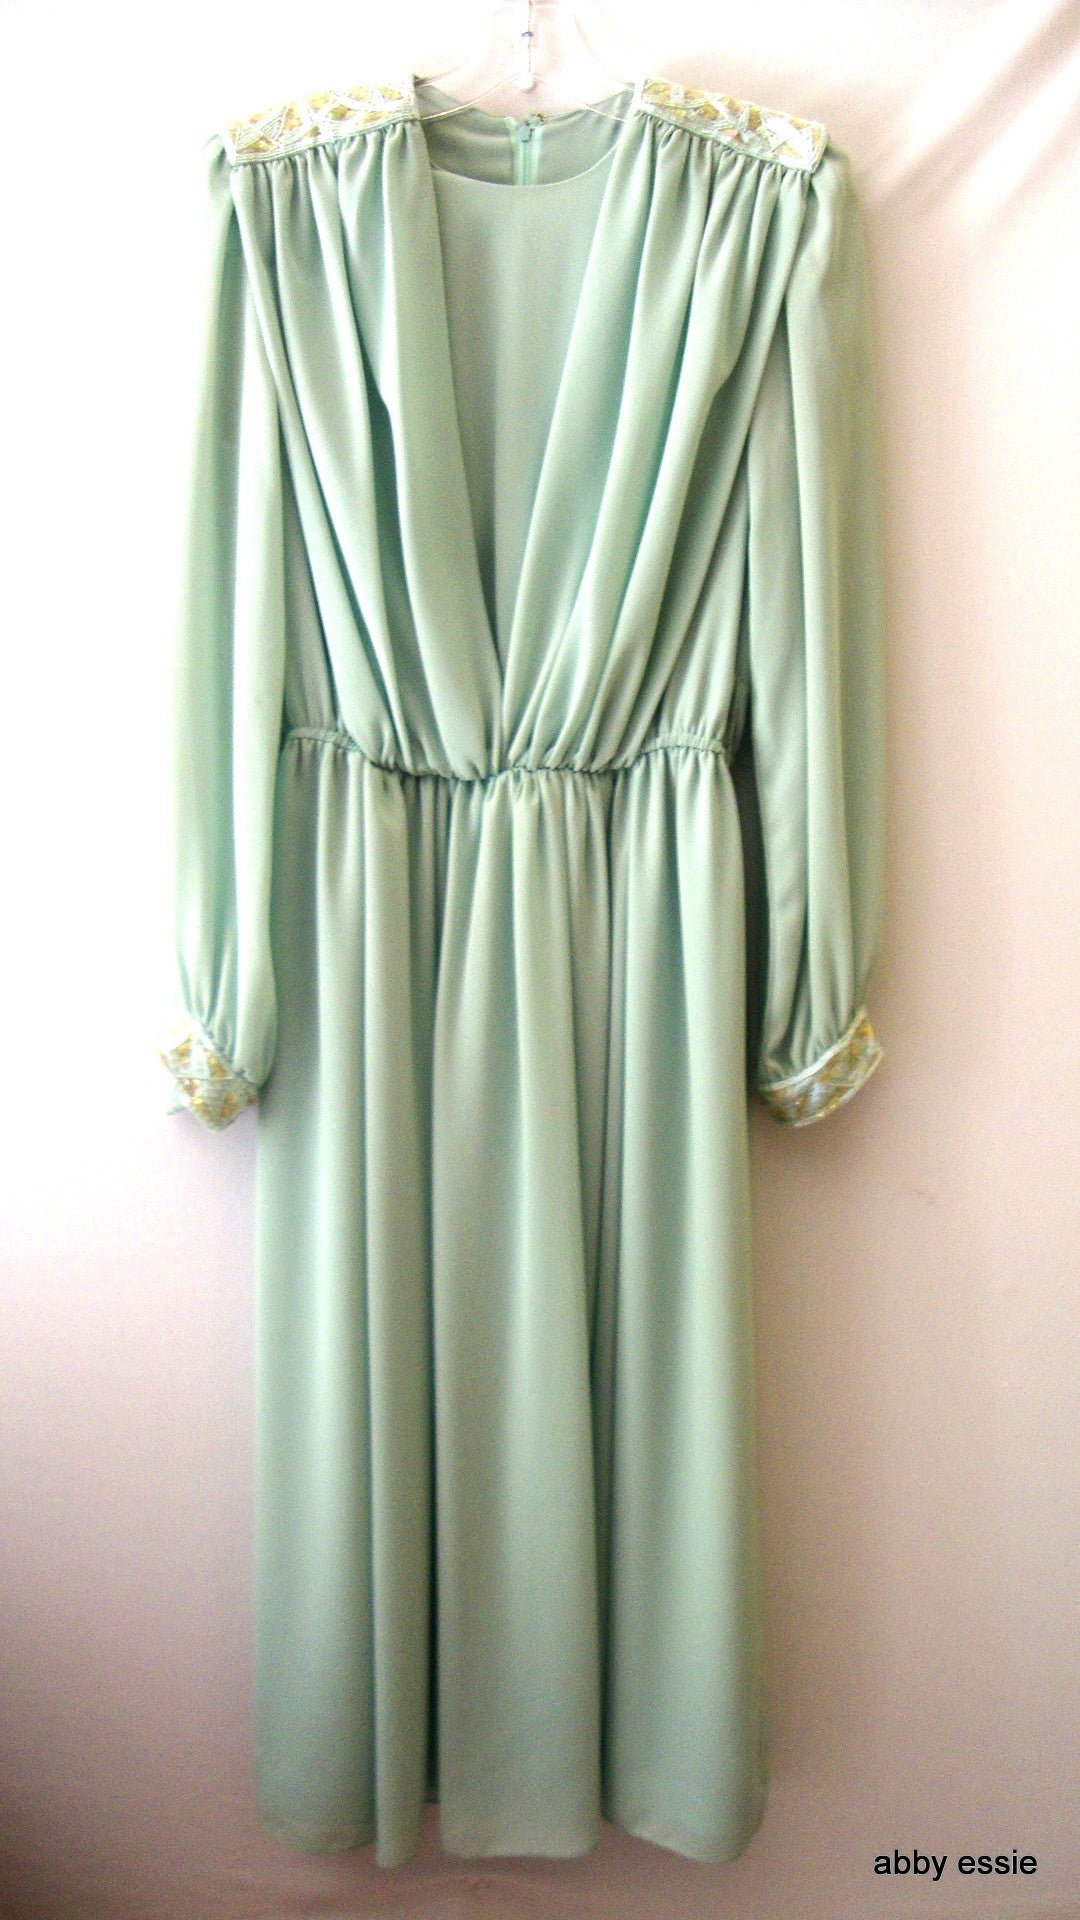 [sold] VTG JACK BRYAN LIGHT GREEN CHIFFON DRAPED DRESS W/ SEQUINED BEADED 10